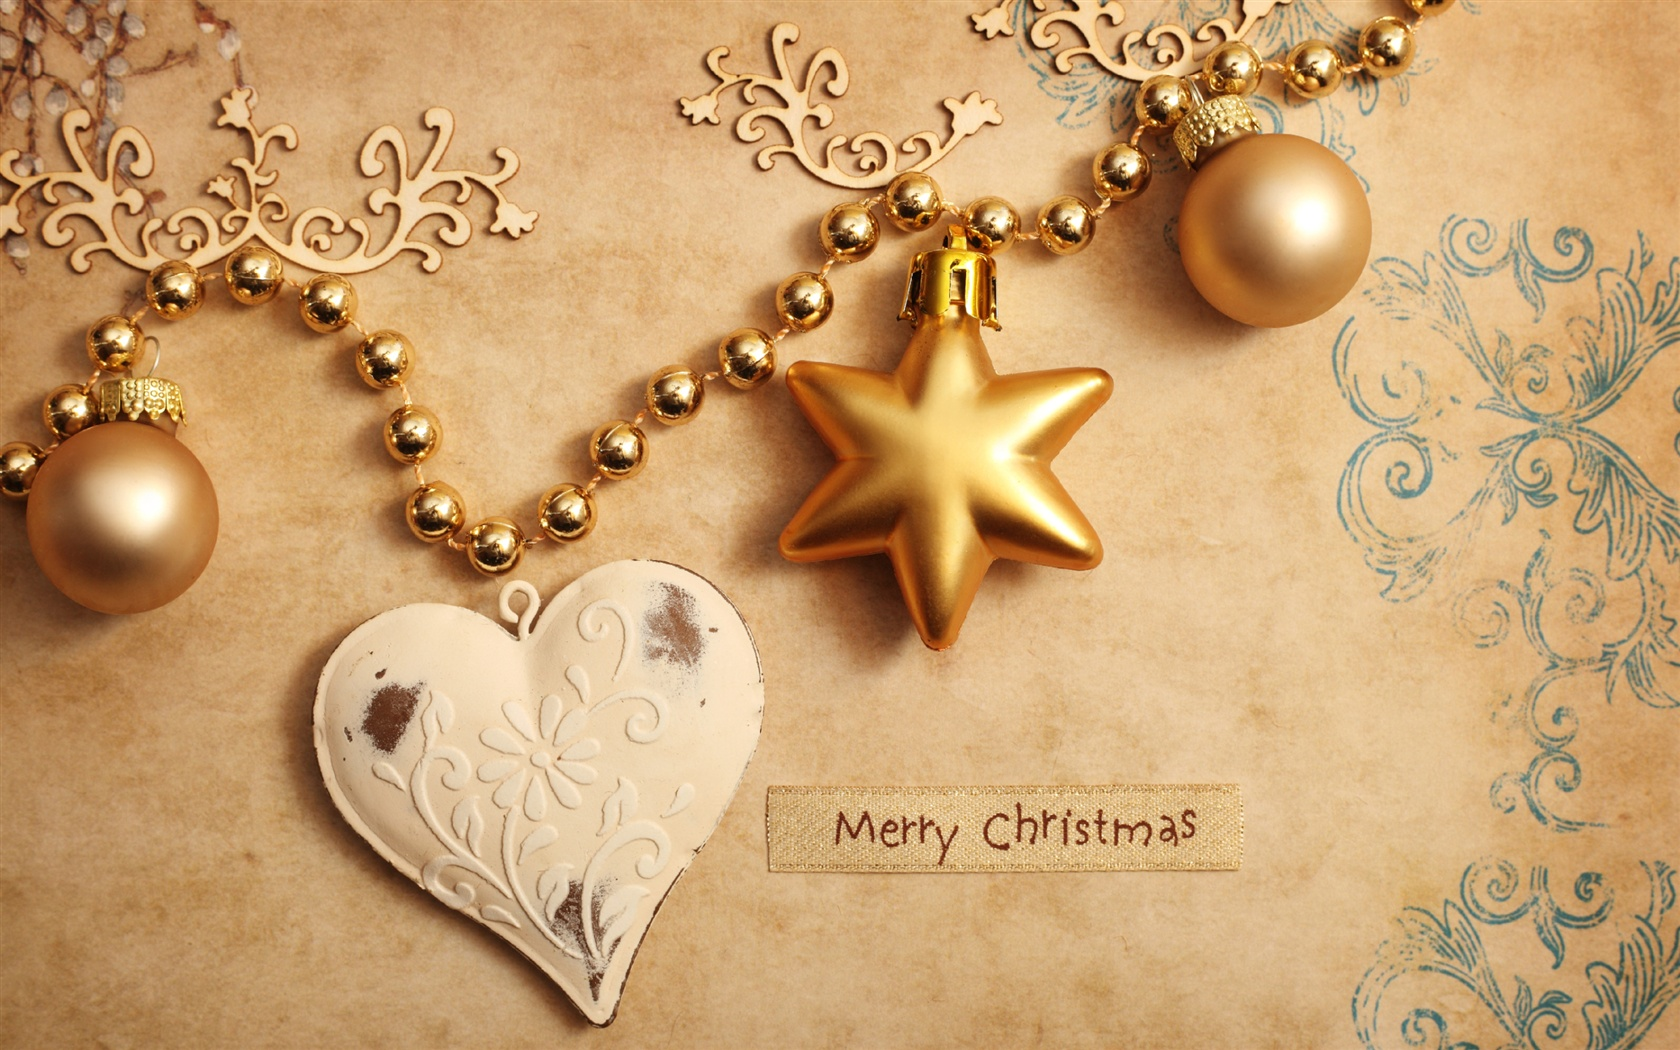 Christmas ornaments wallpaper - 1680x1050